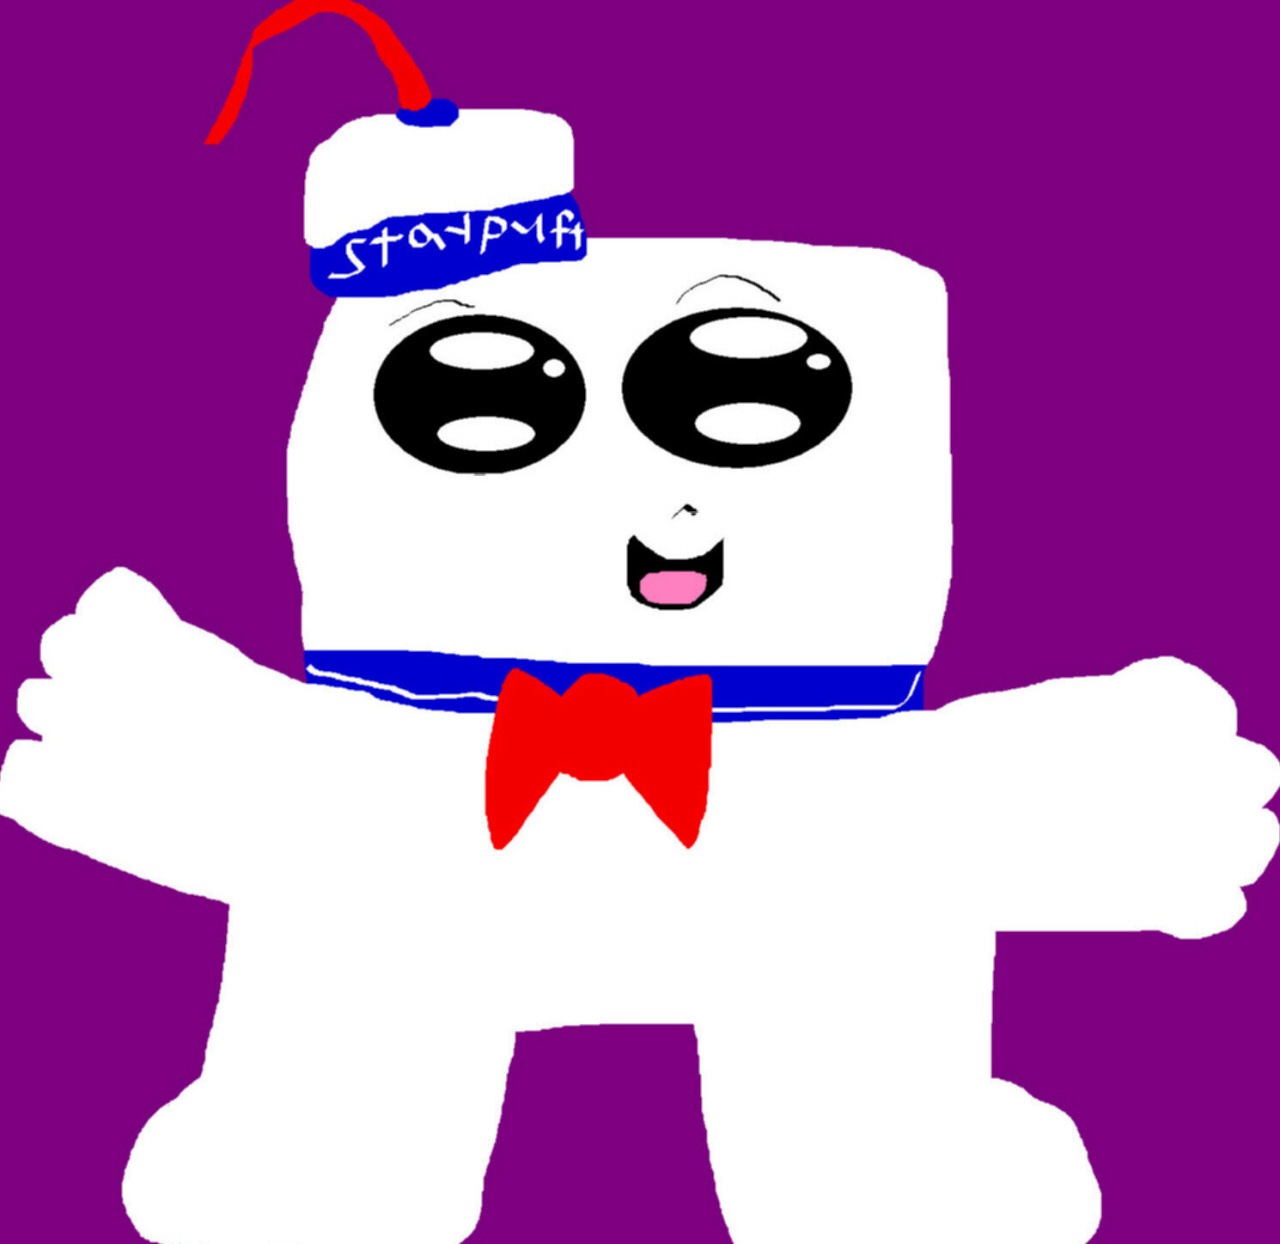 Chibi Staypuft MS Paint Plush Ref Used by Falconlobo